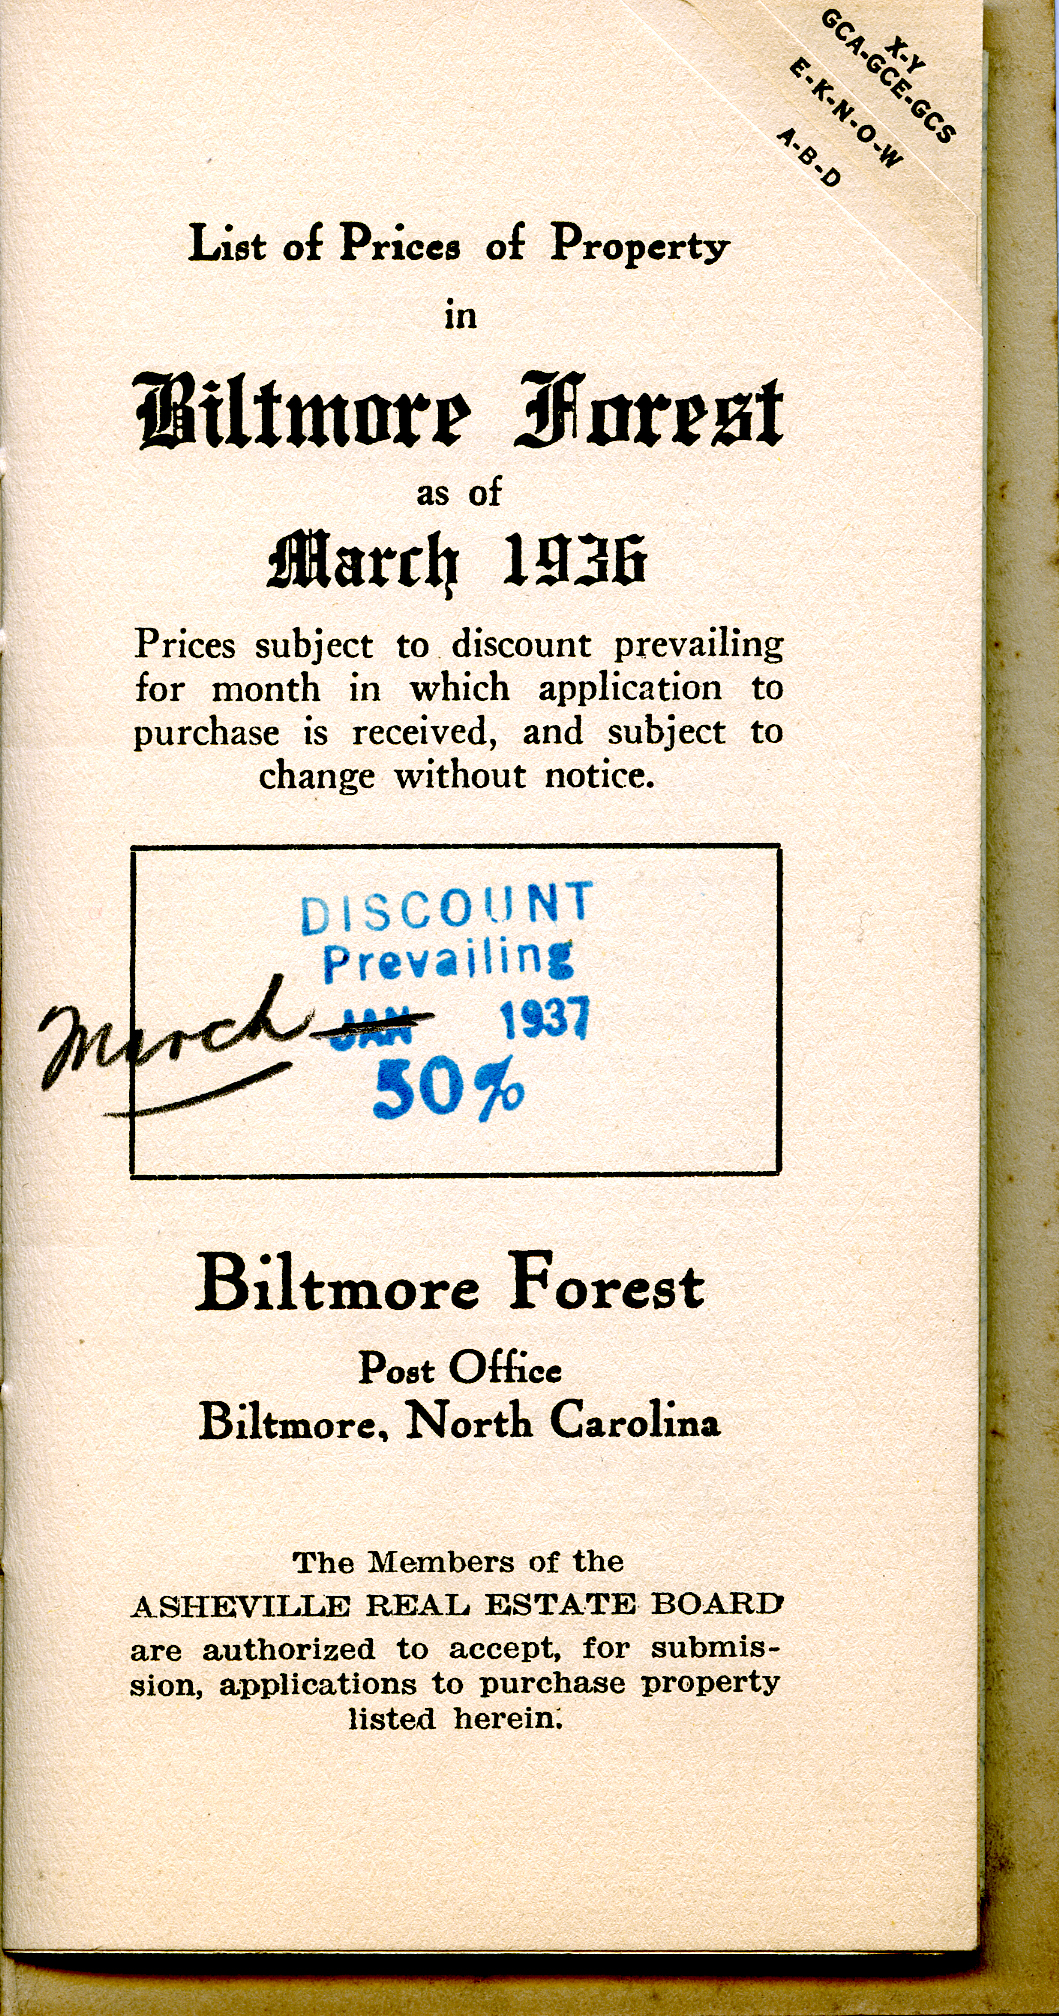 BILTMORE FOREST March 1936 List of Property